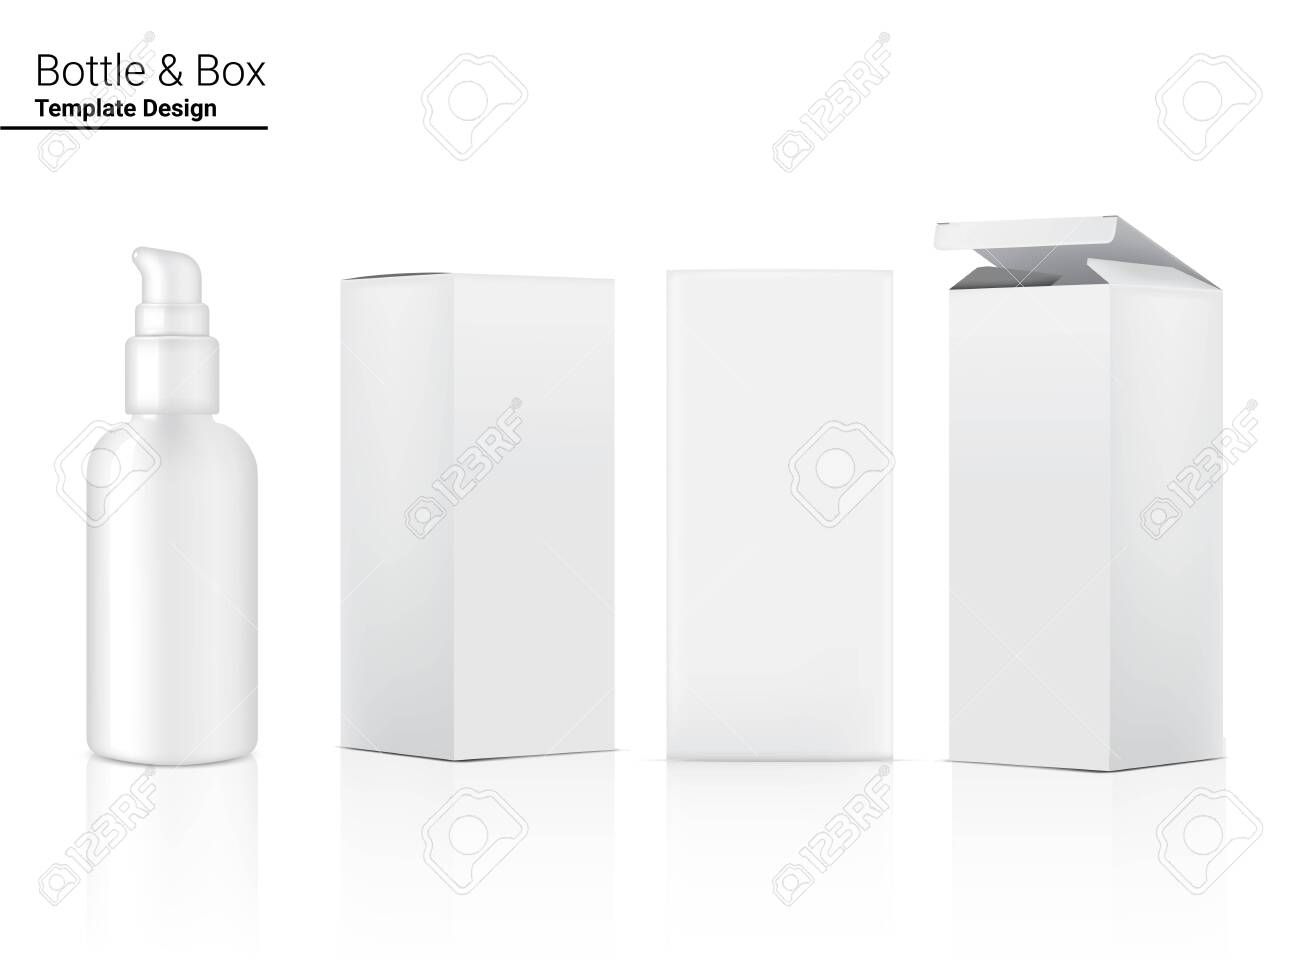 Pump Bottle Mock up Realistic Cosmetic and Box for Skincare Product on White Background Illustration. Health Care and Medical Concept Design. - 142279633